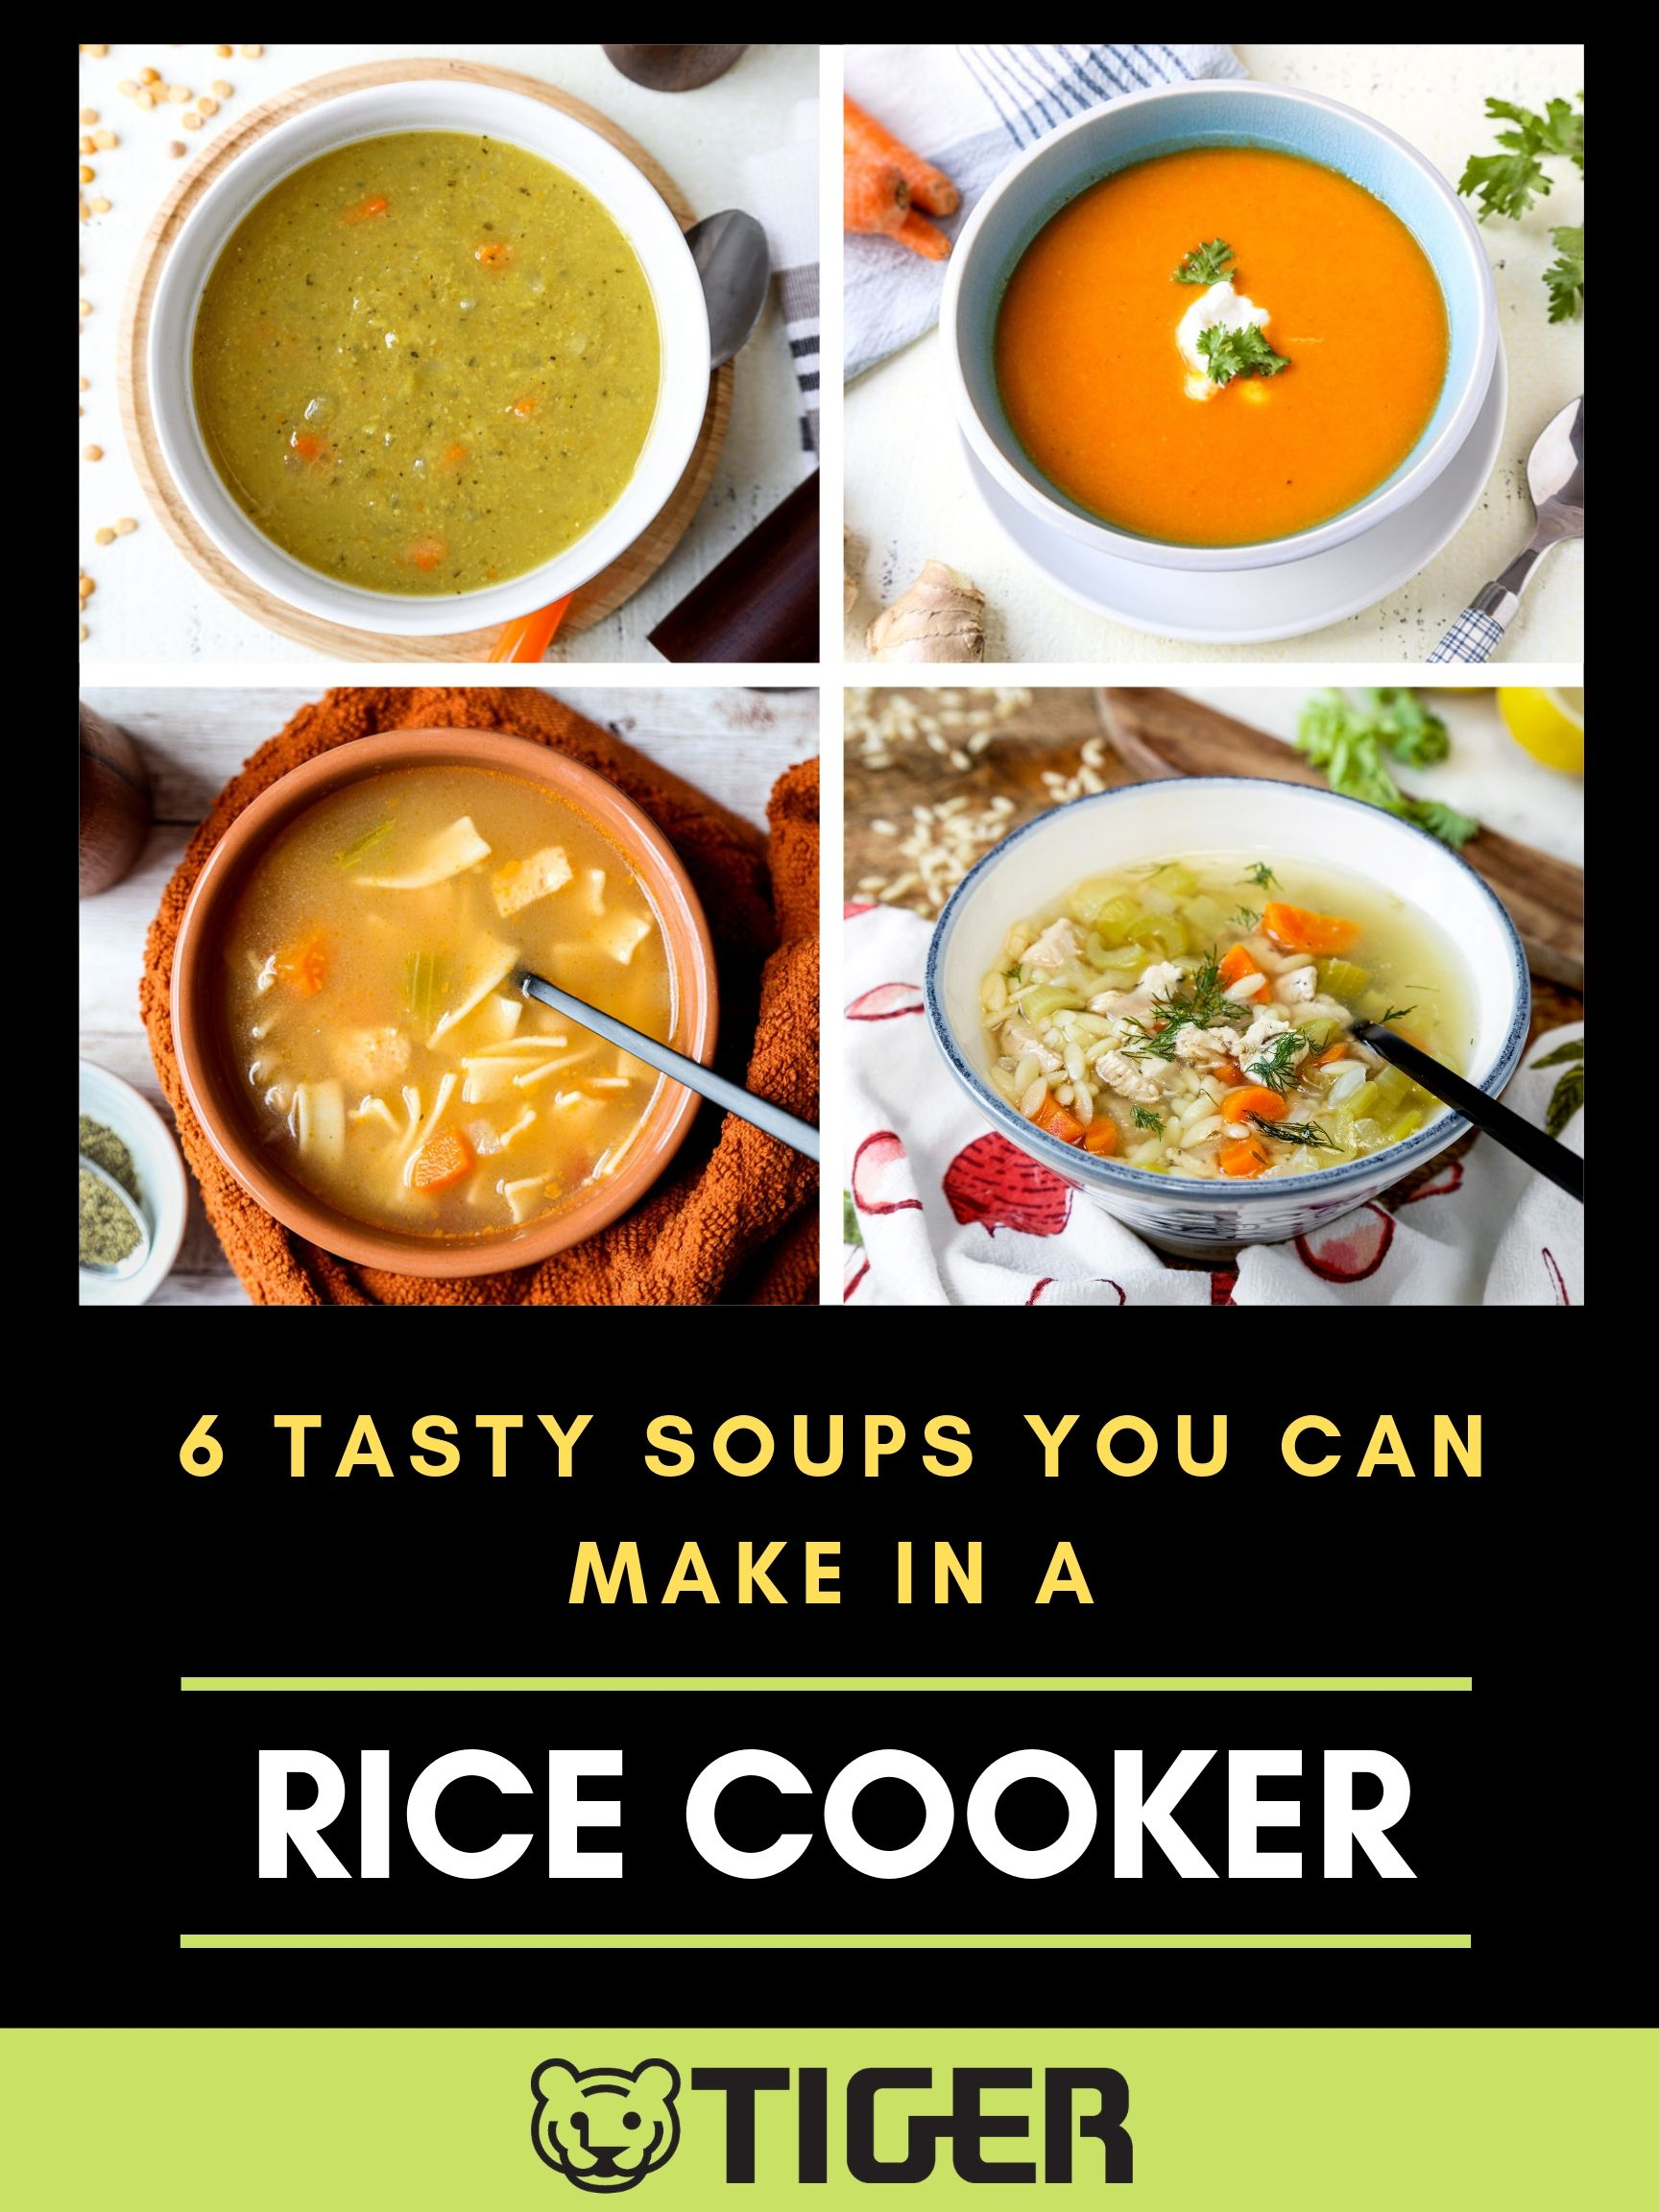 6 Tasty Soups You Can Make In A Rice Cooker